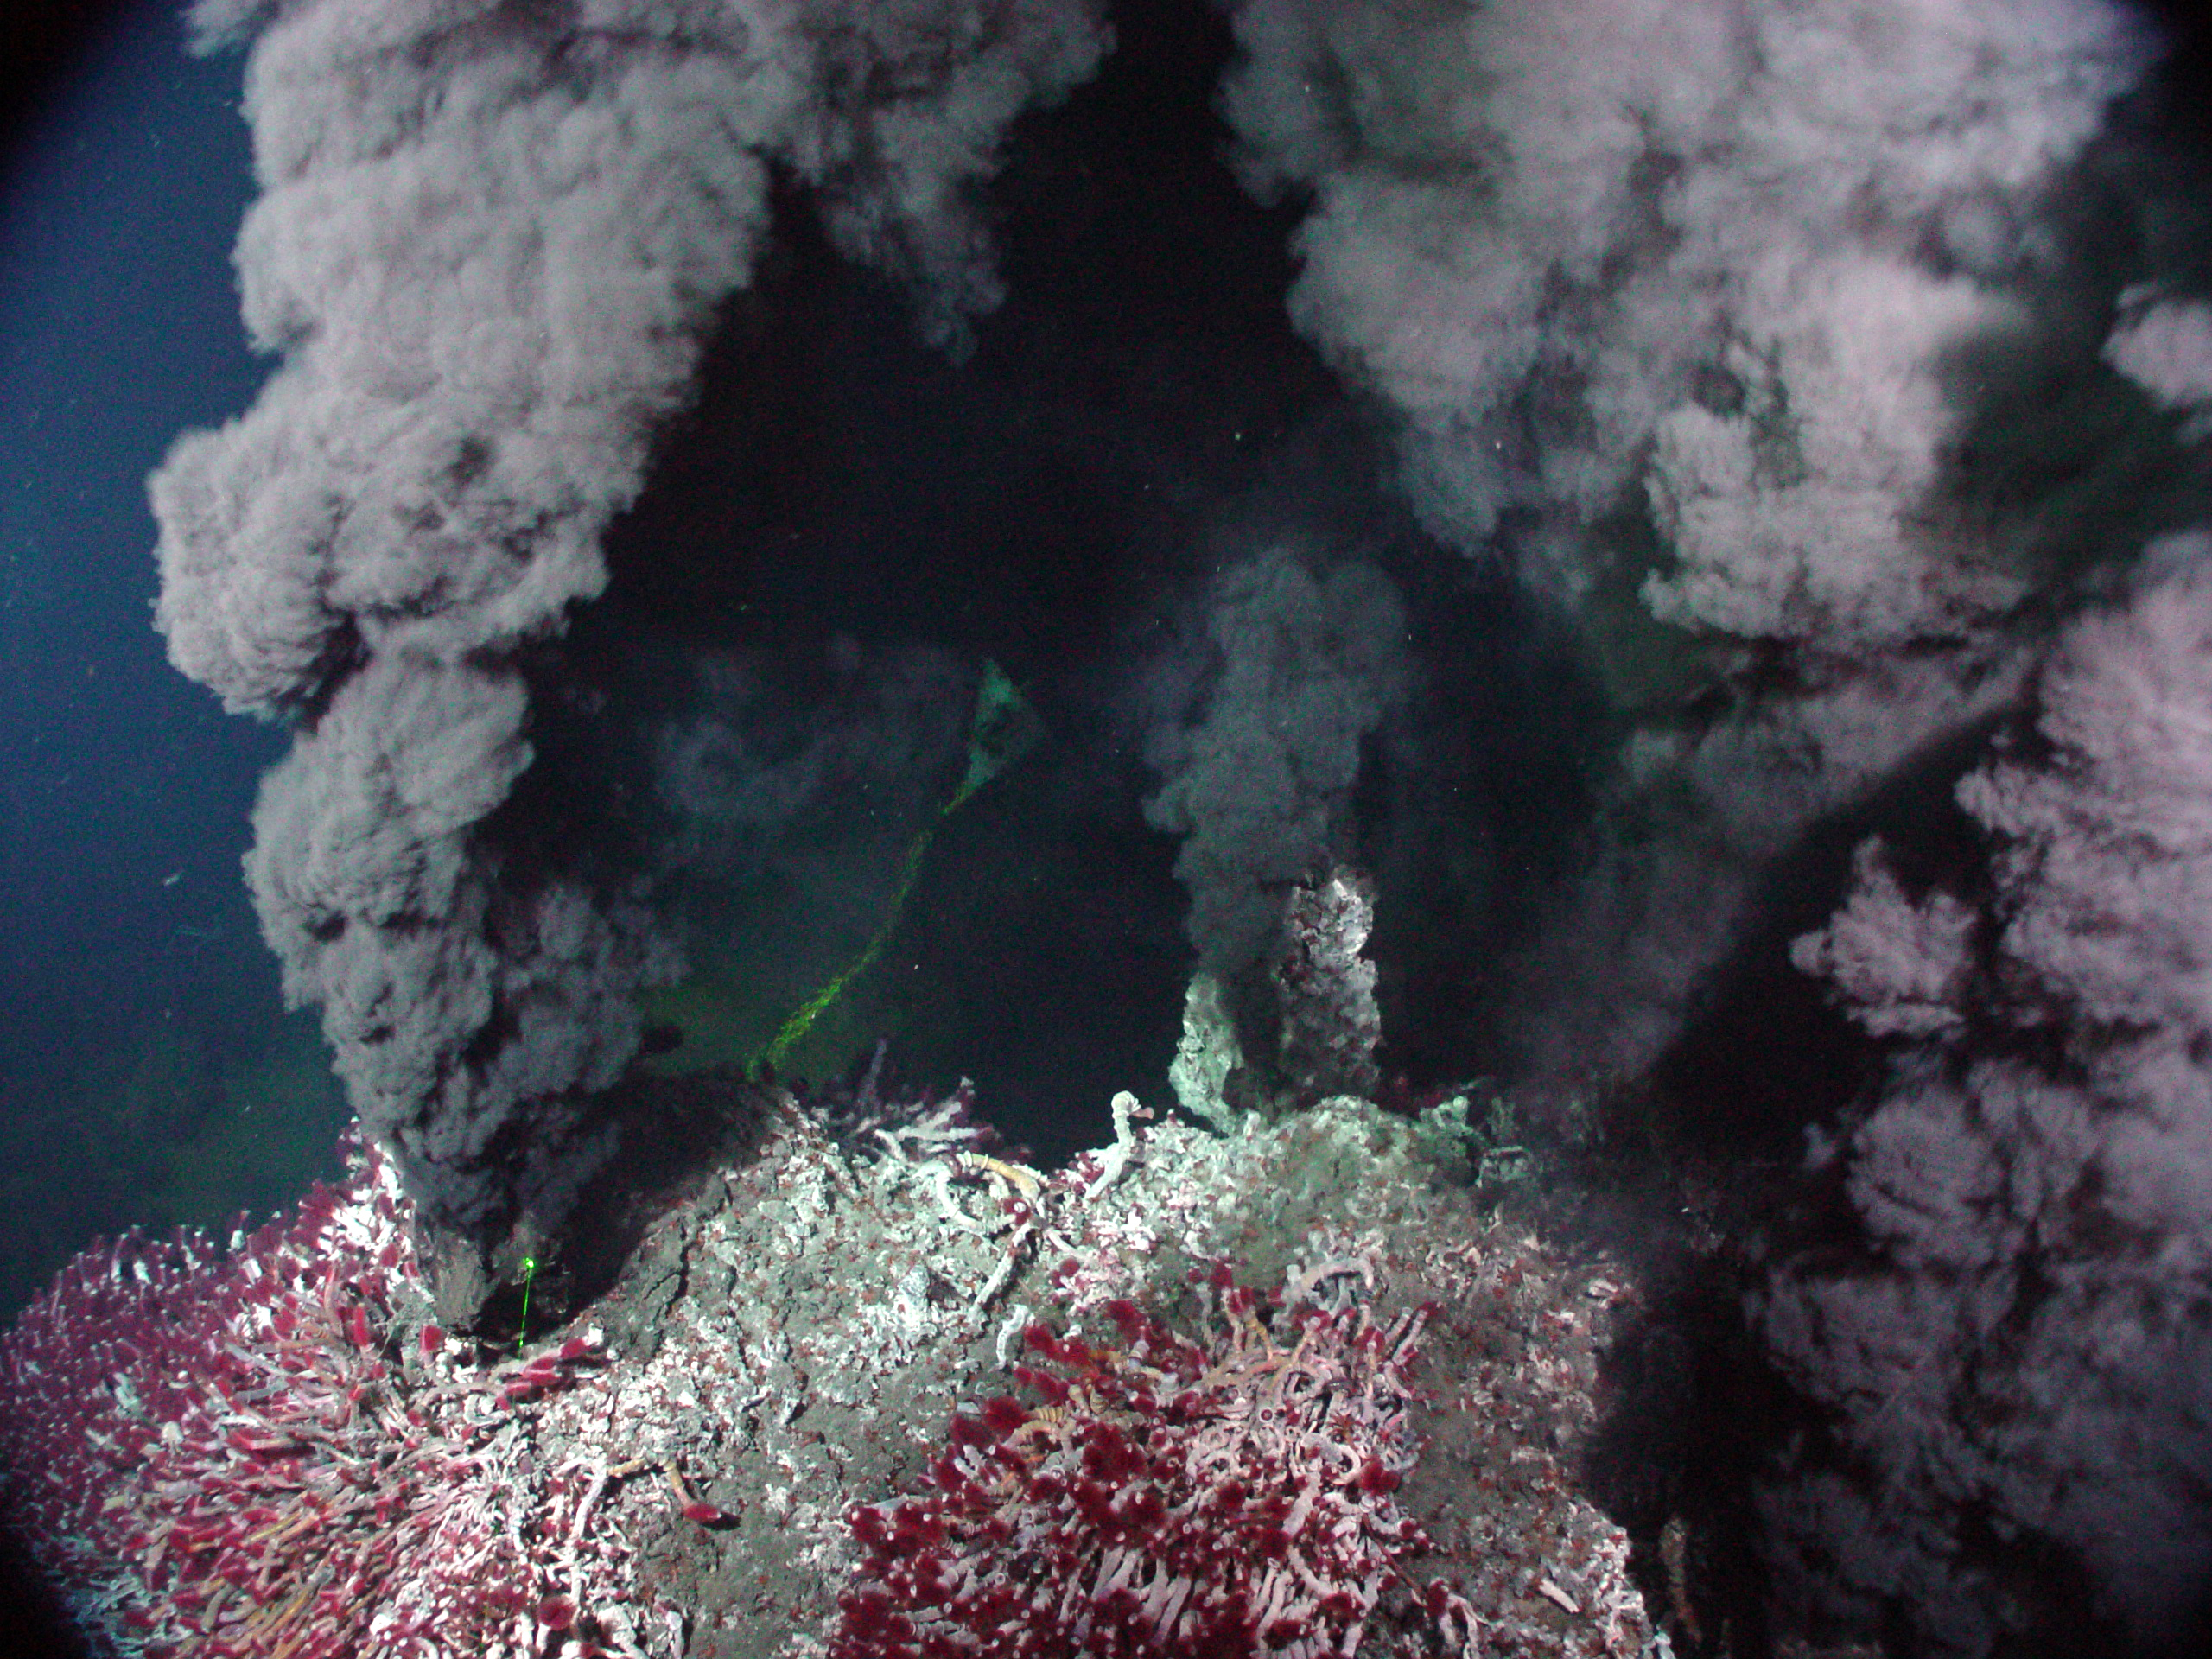 hydrothermal vent bacteria chemosynthesis Hydrothermal vents and chemosynthesis: a habitat in the dark hydrothermal vents are deep, dark locations on the sea floor which release high temperature fluids and chemicals into the ocean water above.